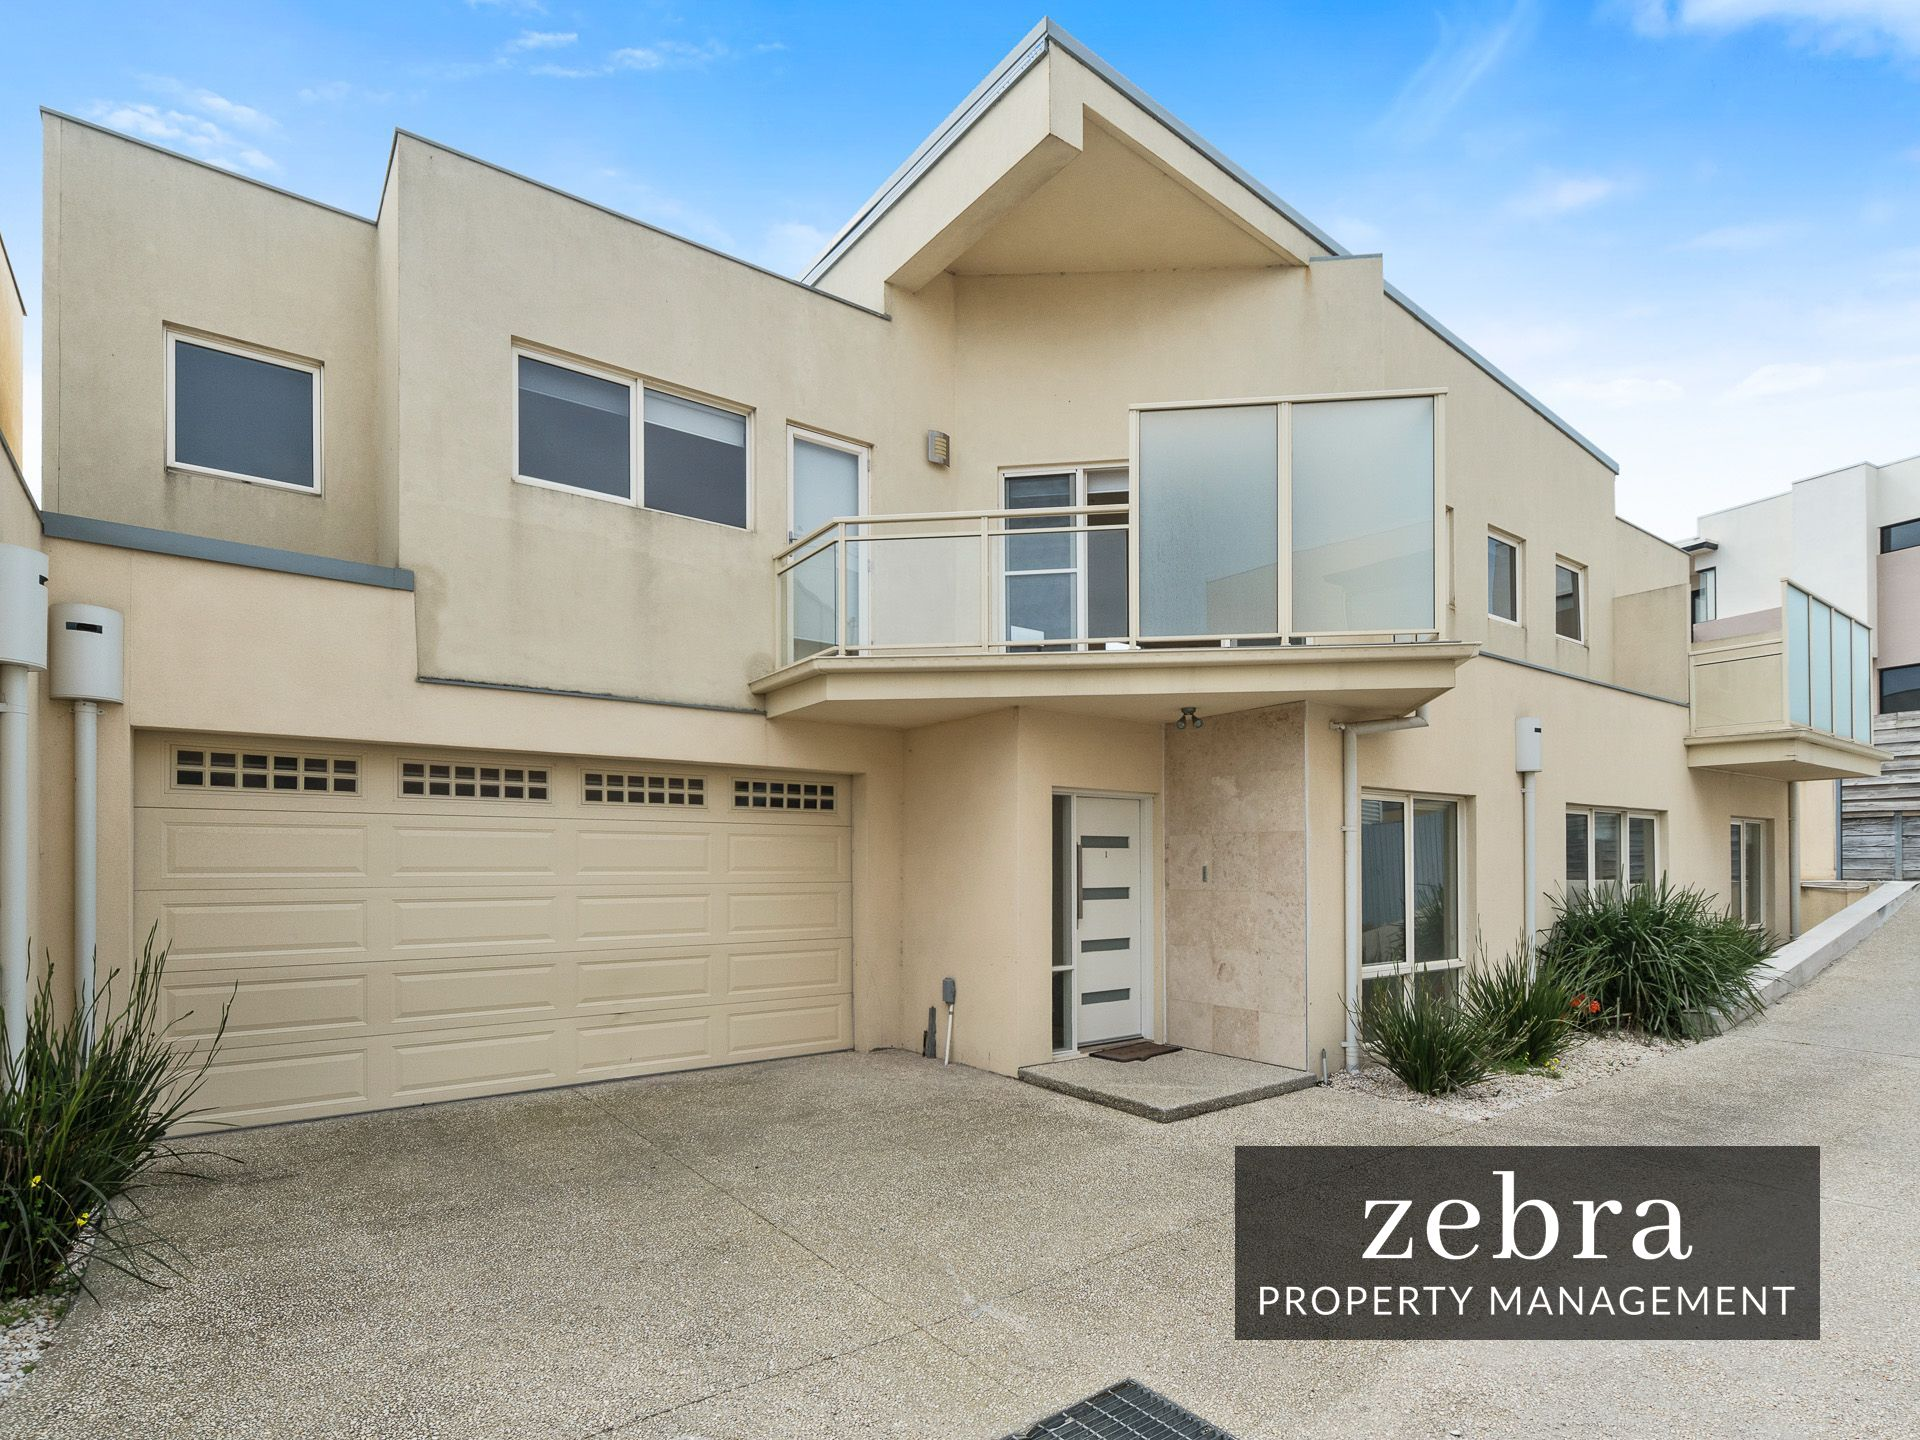 1/1 Harding Lane, BONBEACH, VIC, 3196 - Image